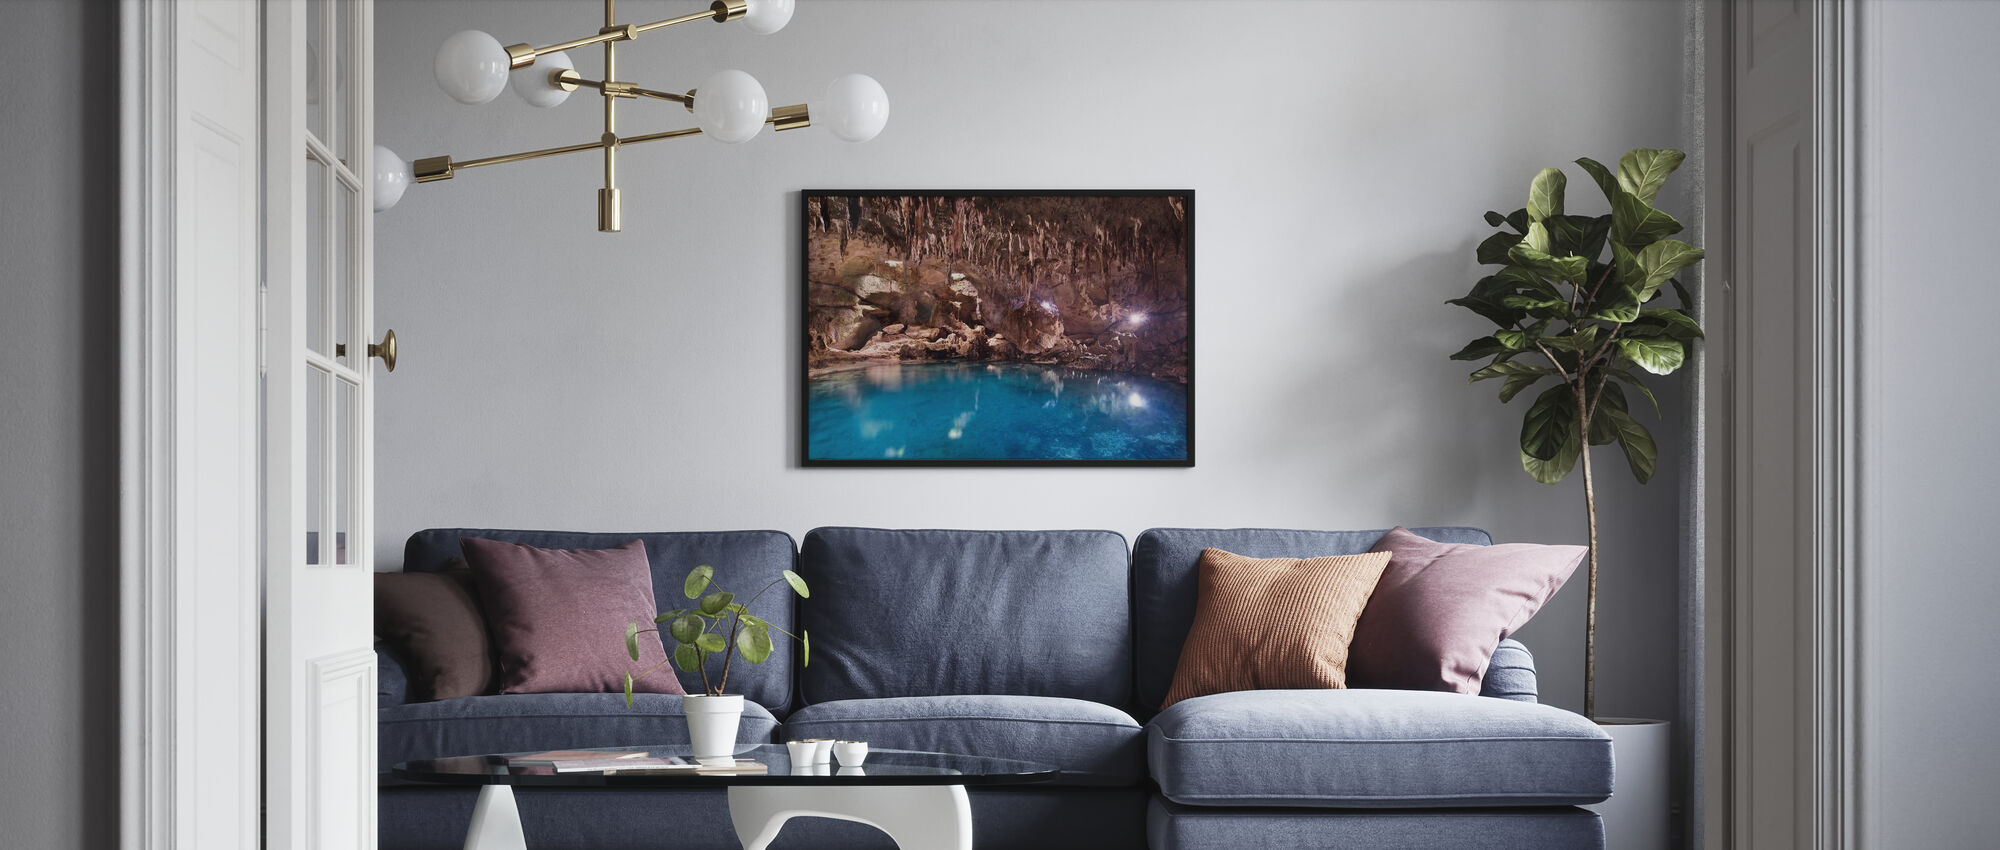 Hinagdanan Cave Pool - Framed print - Living Room